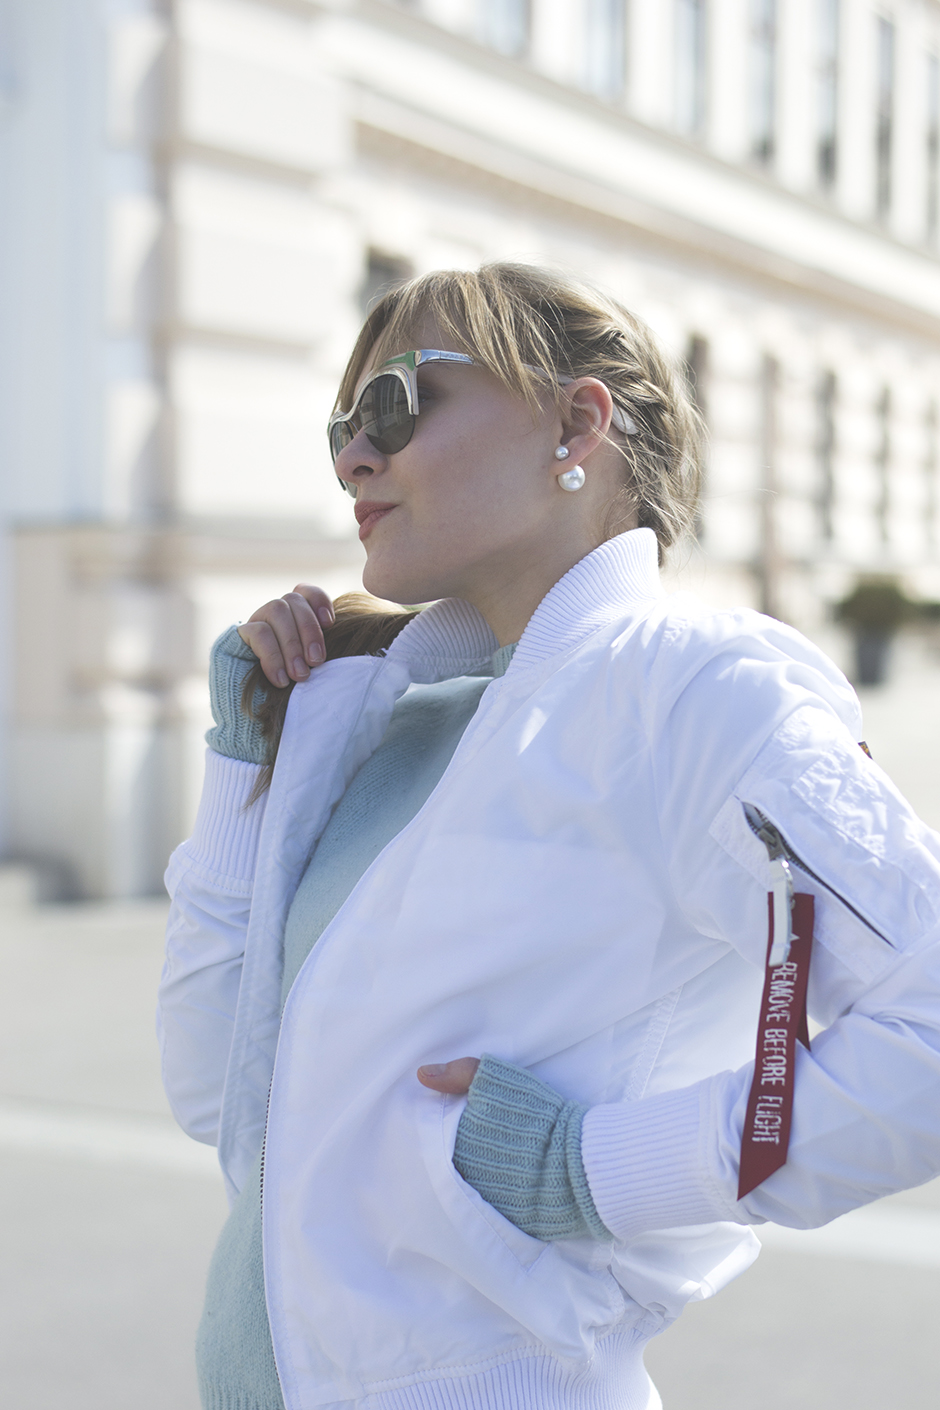 Bomber Jacke weiss Outfit Streetstyle Fashionblog Style Sandbox Vienna Wien Blog Lifestyle 5